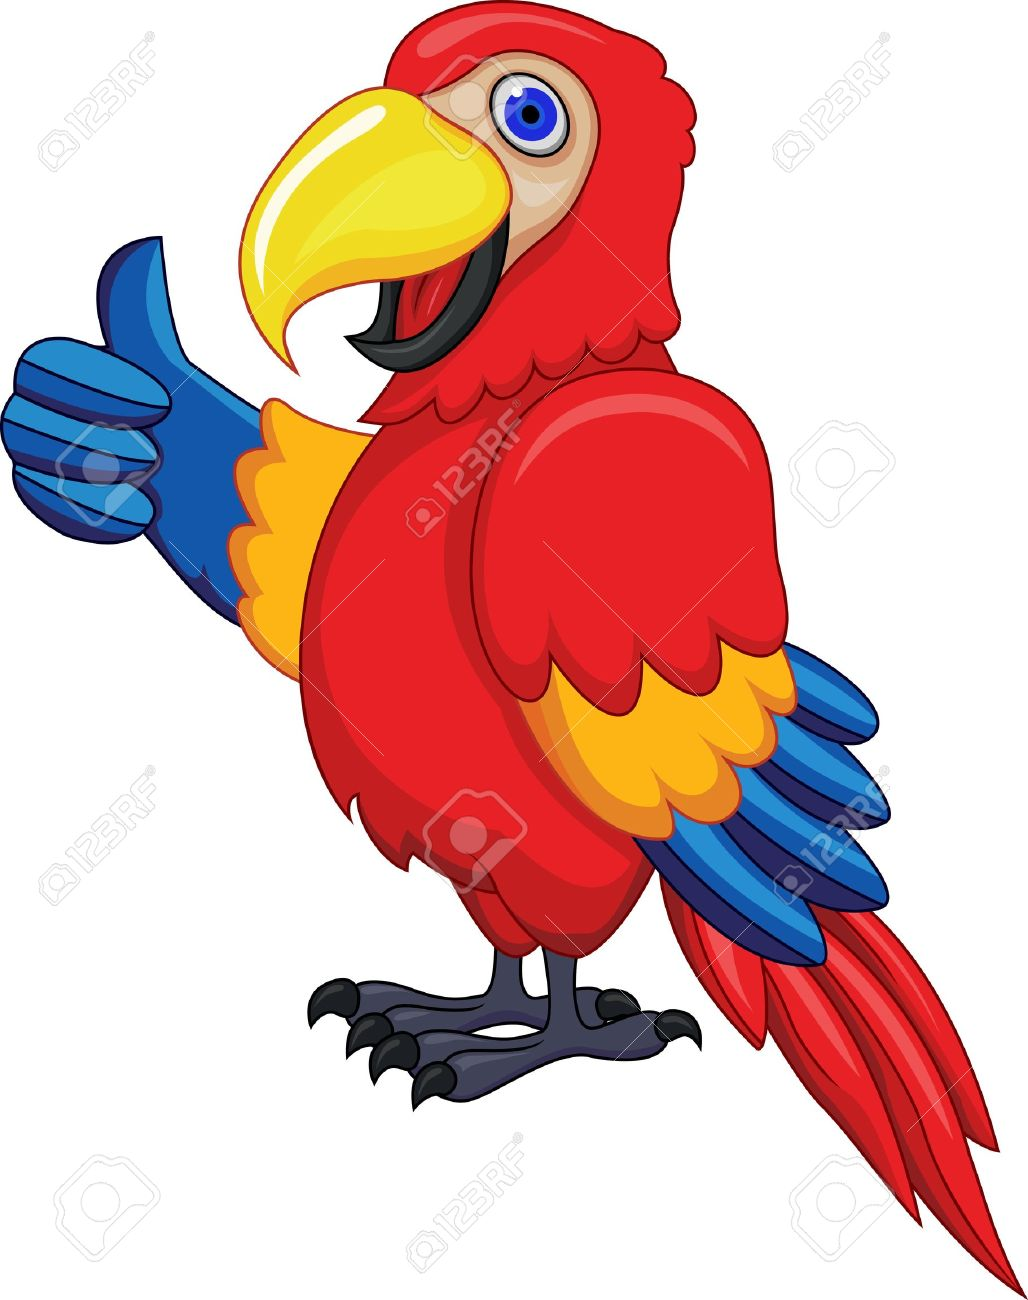 Funny Parrot Stock Vector - 13281574